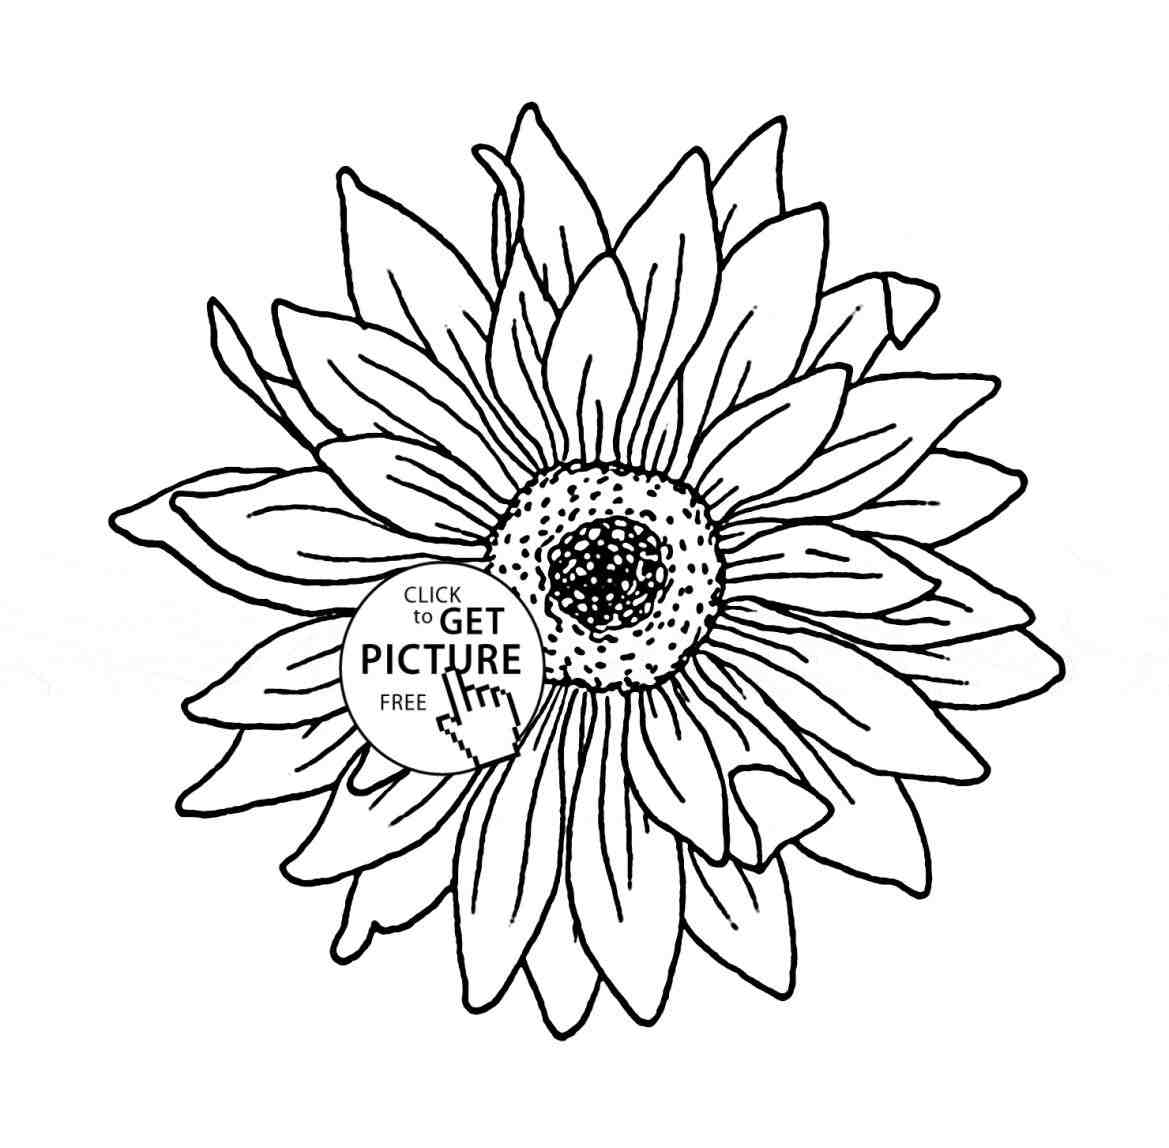 sunflower outline picture drawn sunflower outline sunflower flower drawing 4 outline picture sunflower